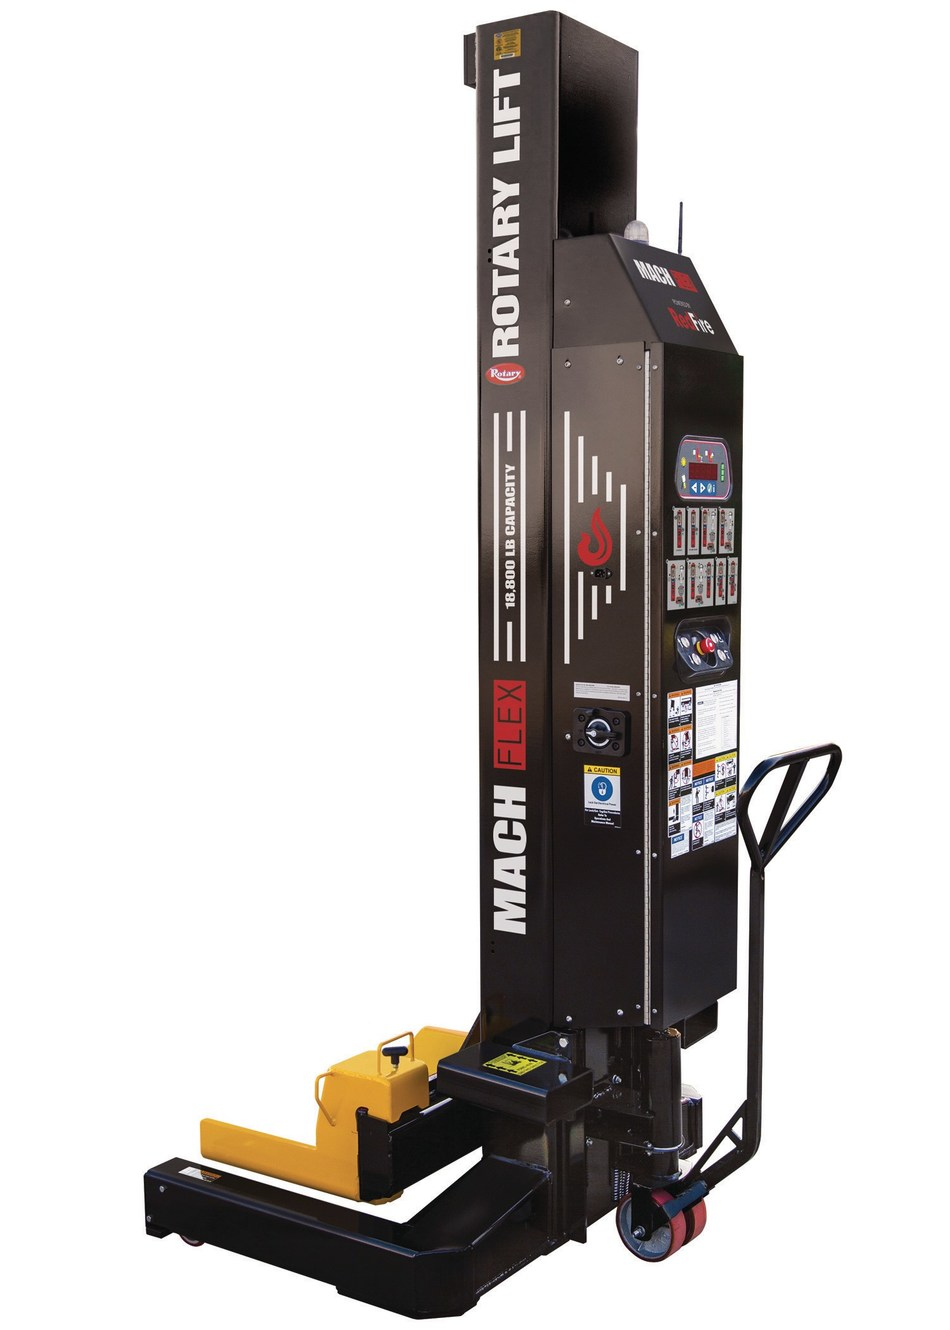 The new Rotary Lift Mach(TM) Flex powered by RedFire(TM) wireless mobile column lifting system is the first in the industry to be operated by remote control for maximum visibility and flexibility. Mach Flex also comes with a higher lifting capacity and unique productivity and safety features built right in.